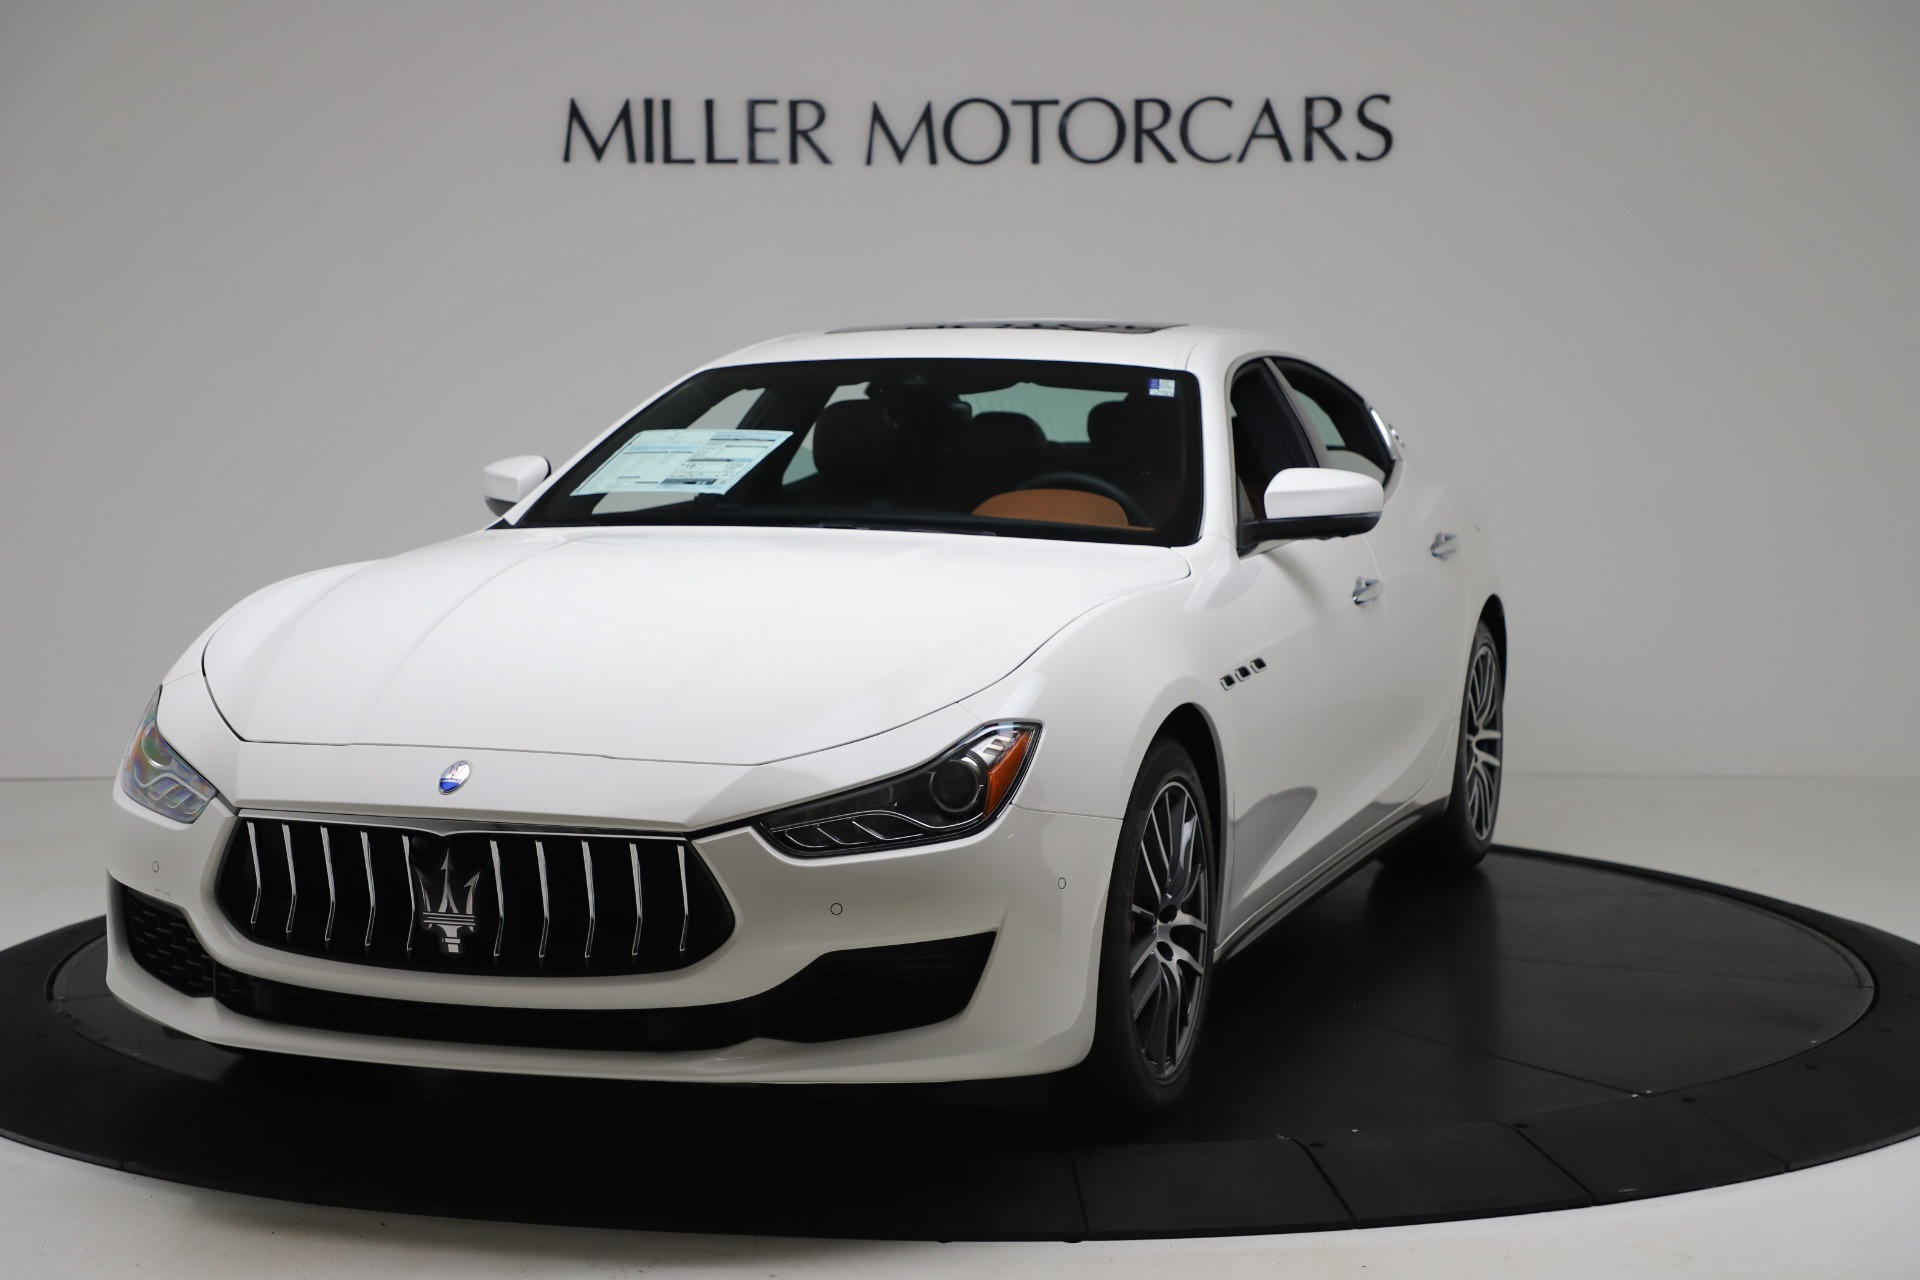 New 2020 Maserati Ghibli S Q4 for sale Sold at Alfa Romeo of Westport in Westport CT 06880 1